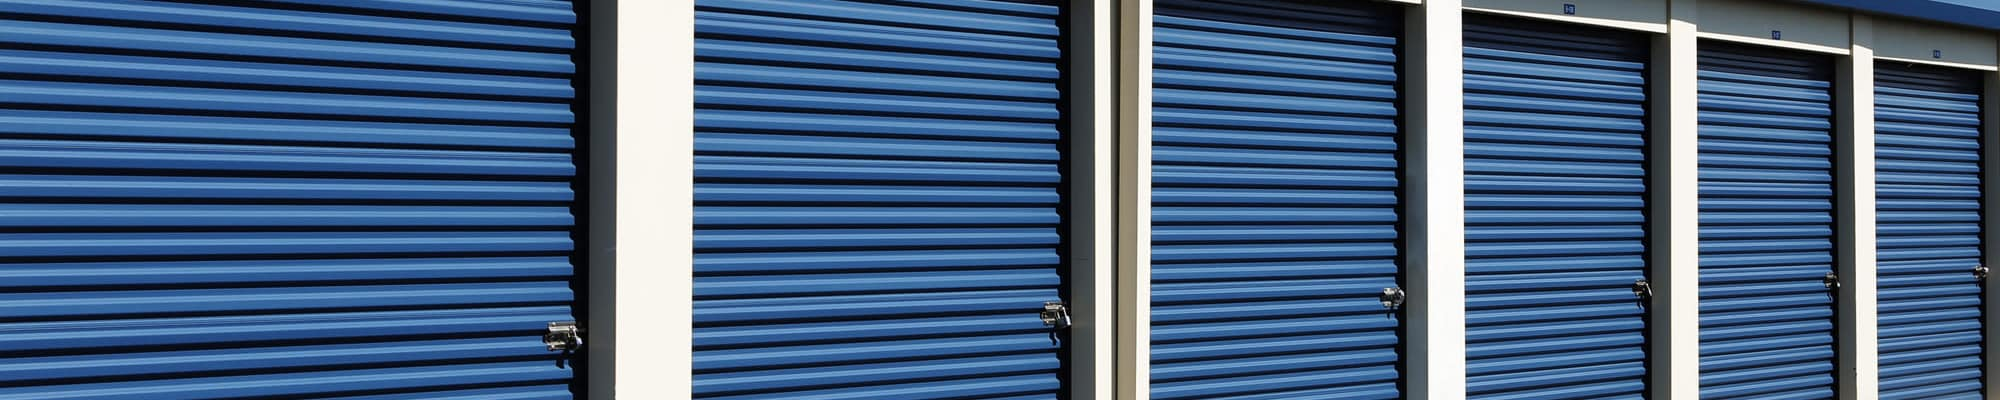 Contact Midgard Self Storage in Cocoa, Florida